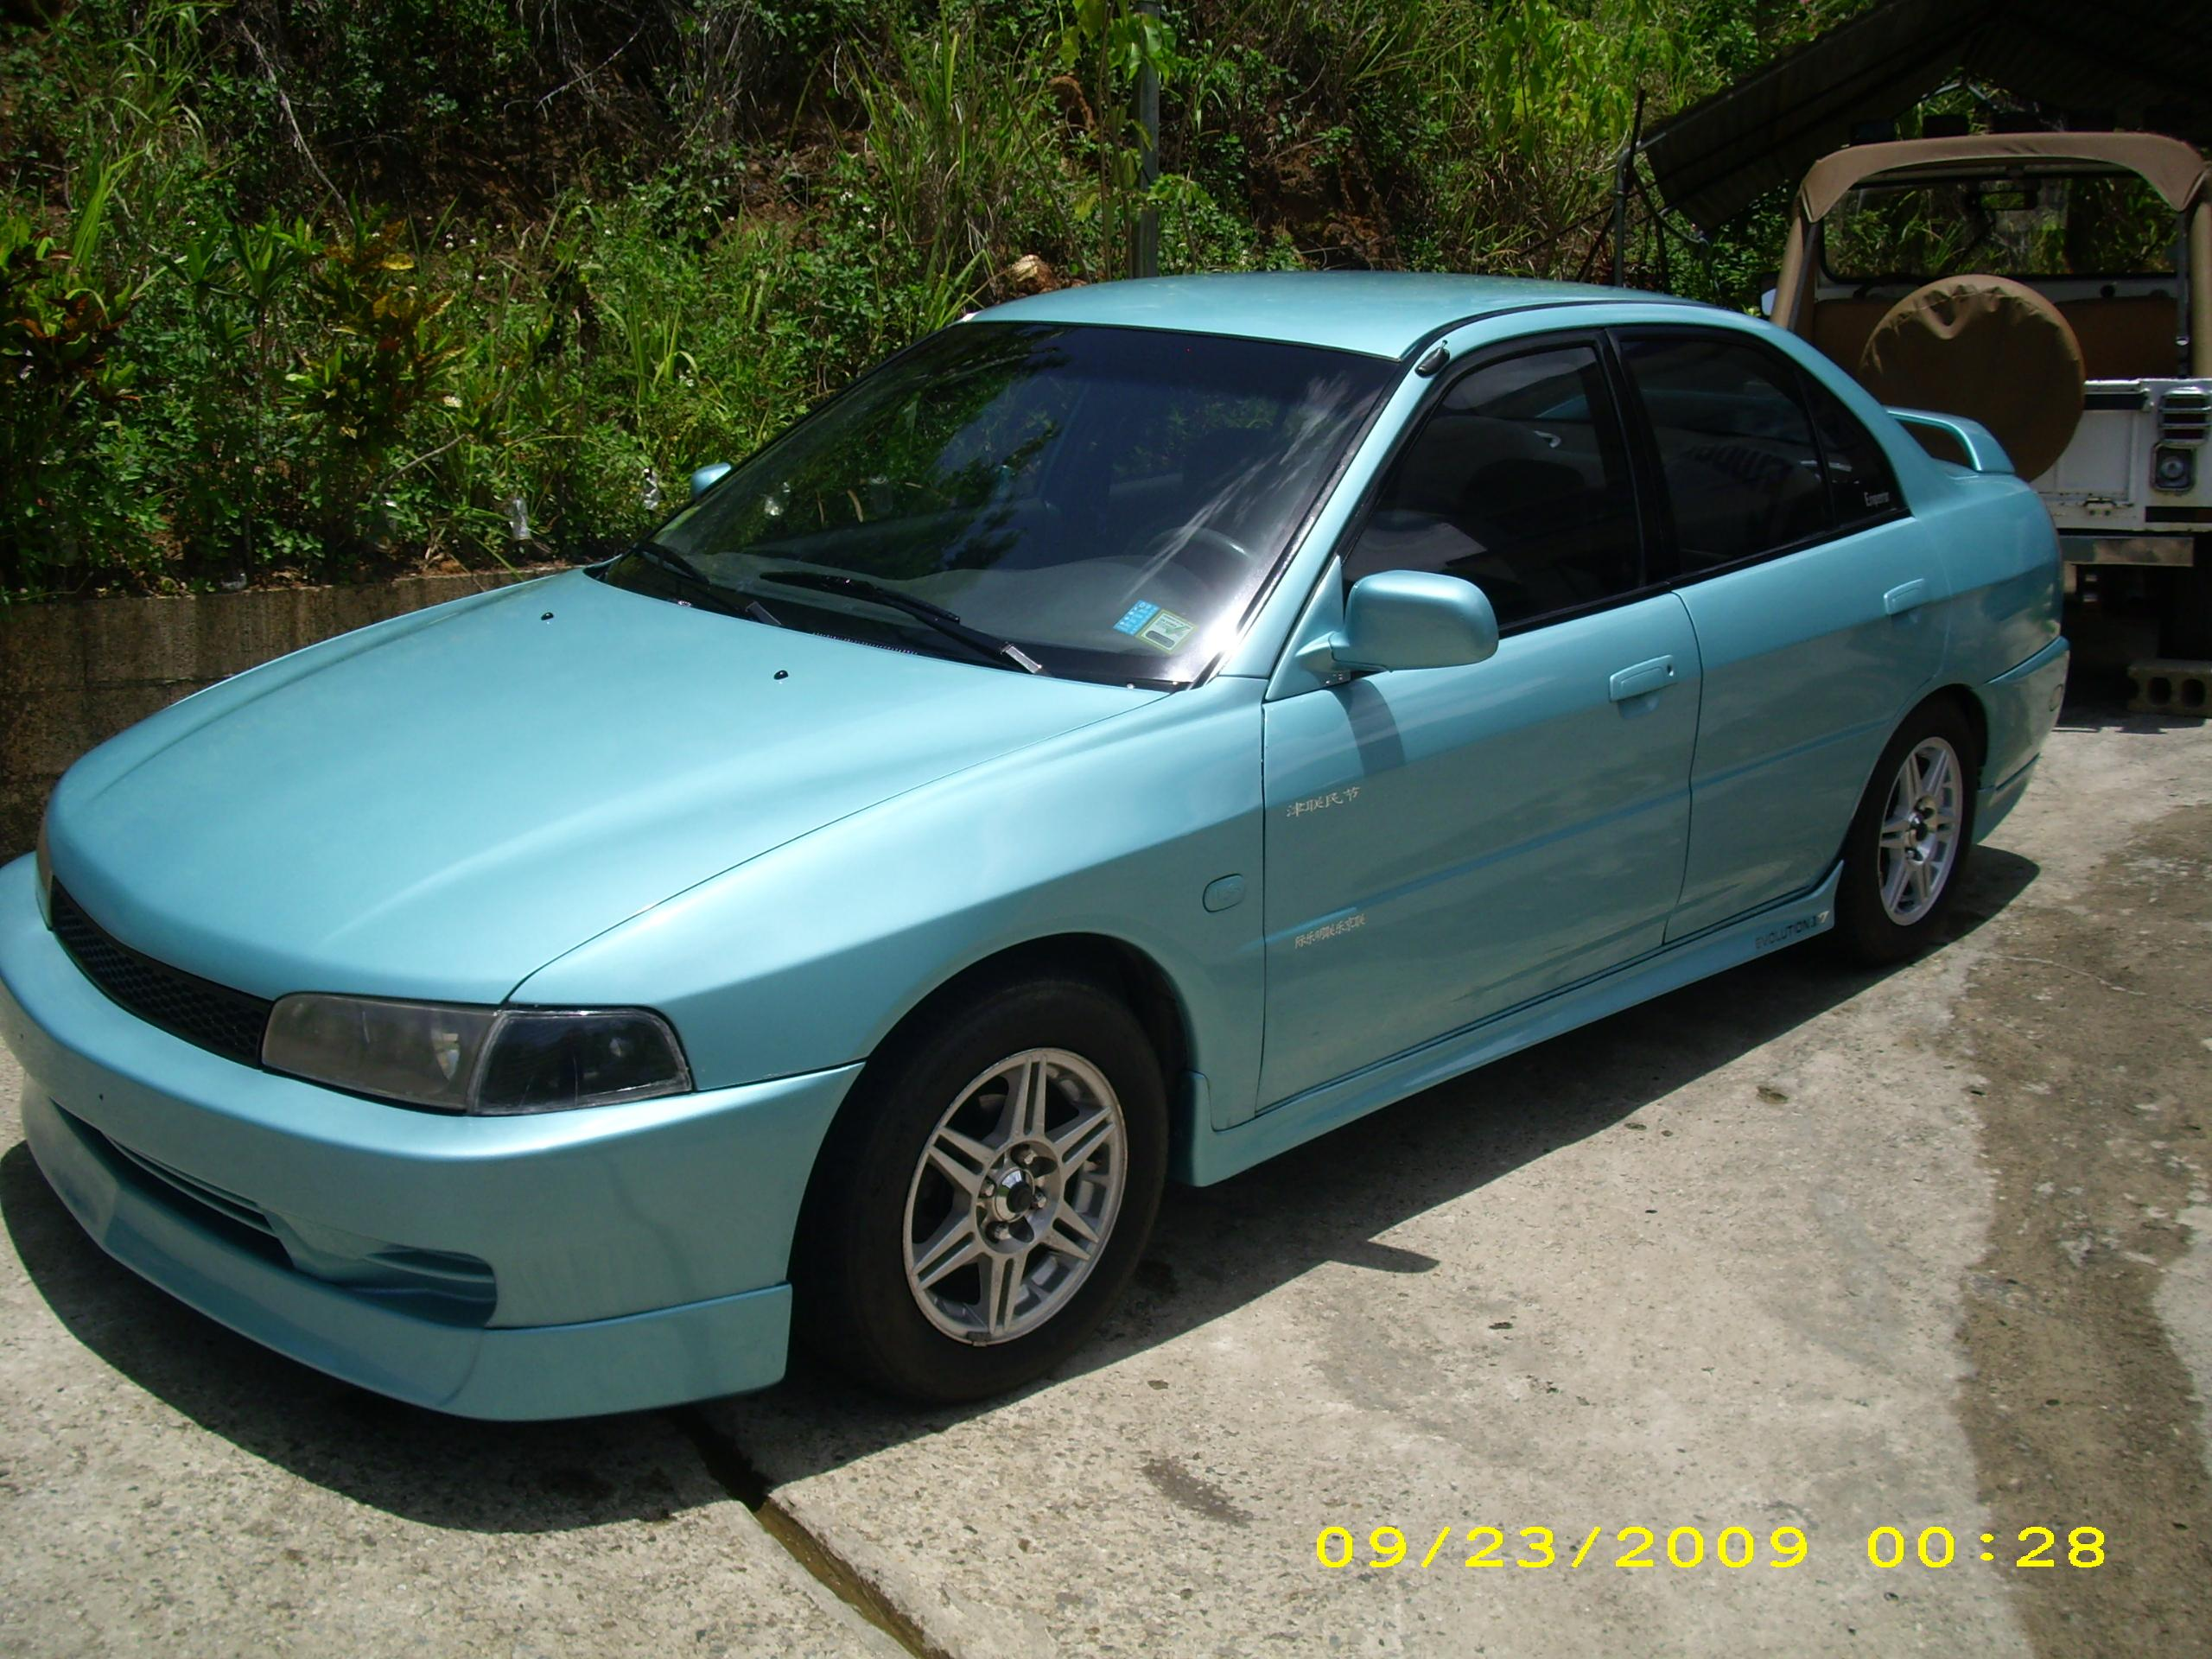 Mirage_85 1997 Mitsubishi MirageLS Sedan 4D Specs, Photos